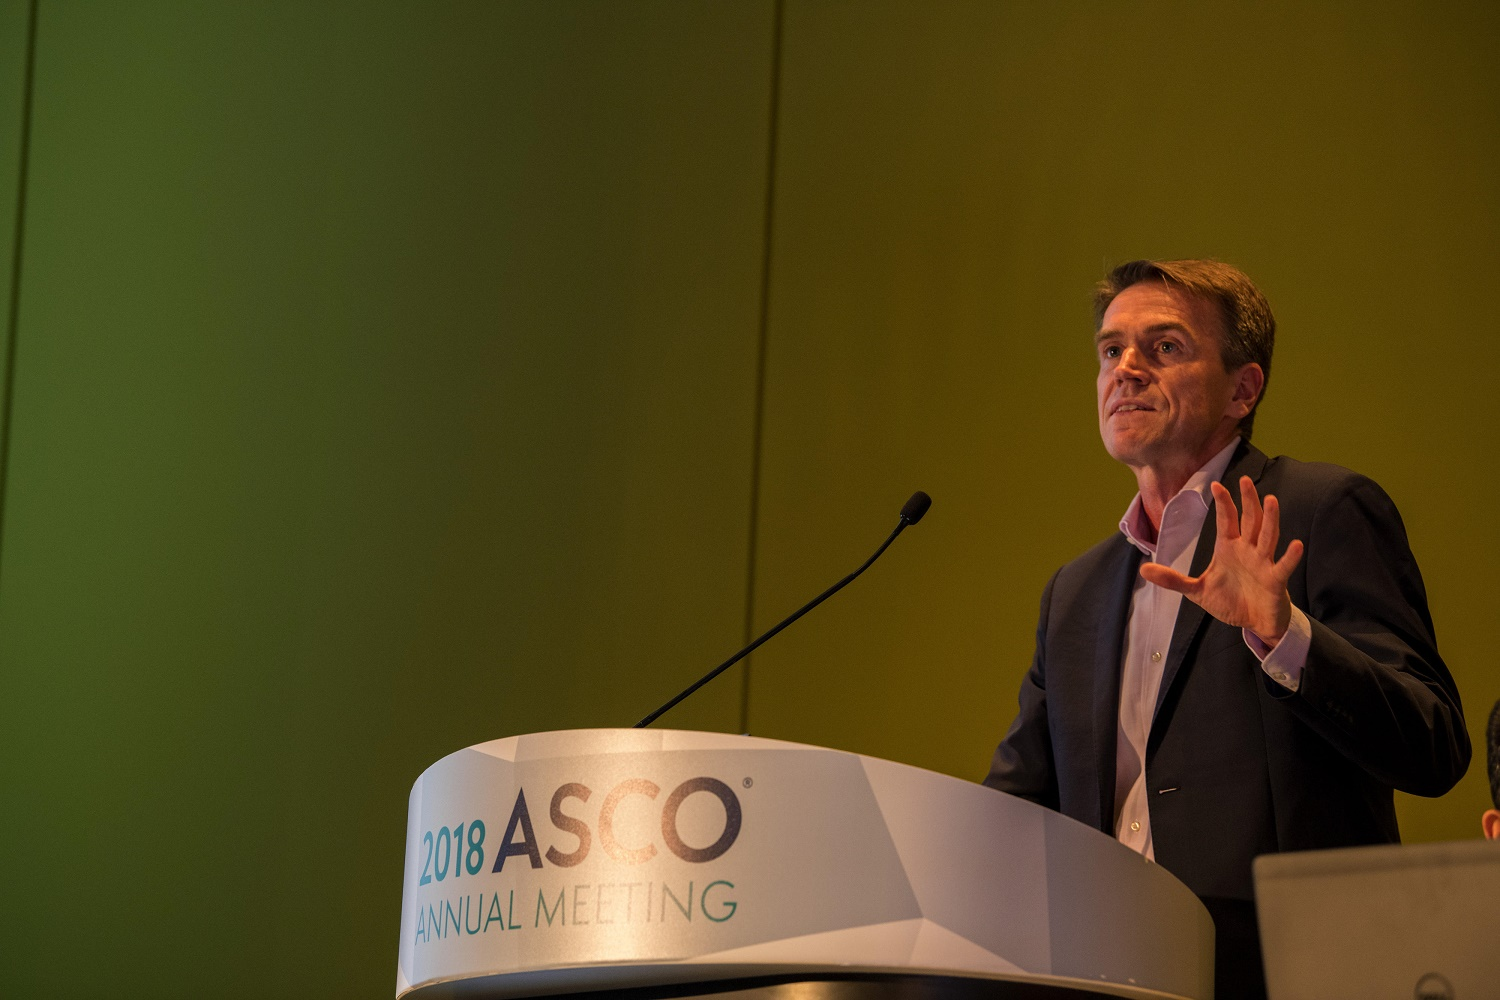 Wolfgang Wick speaking at ASCO18